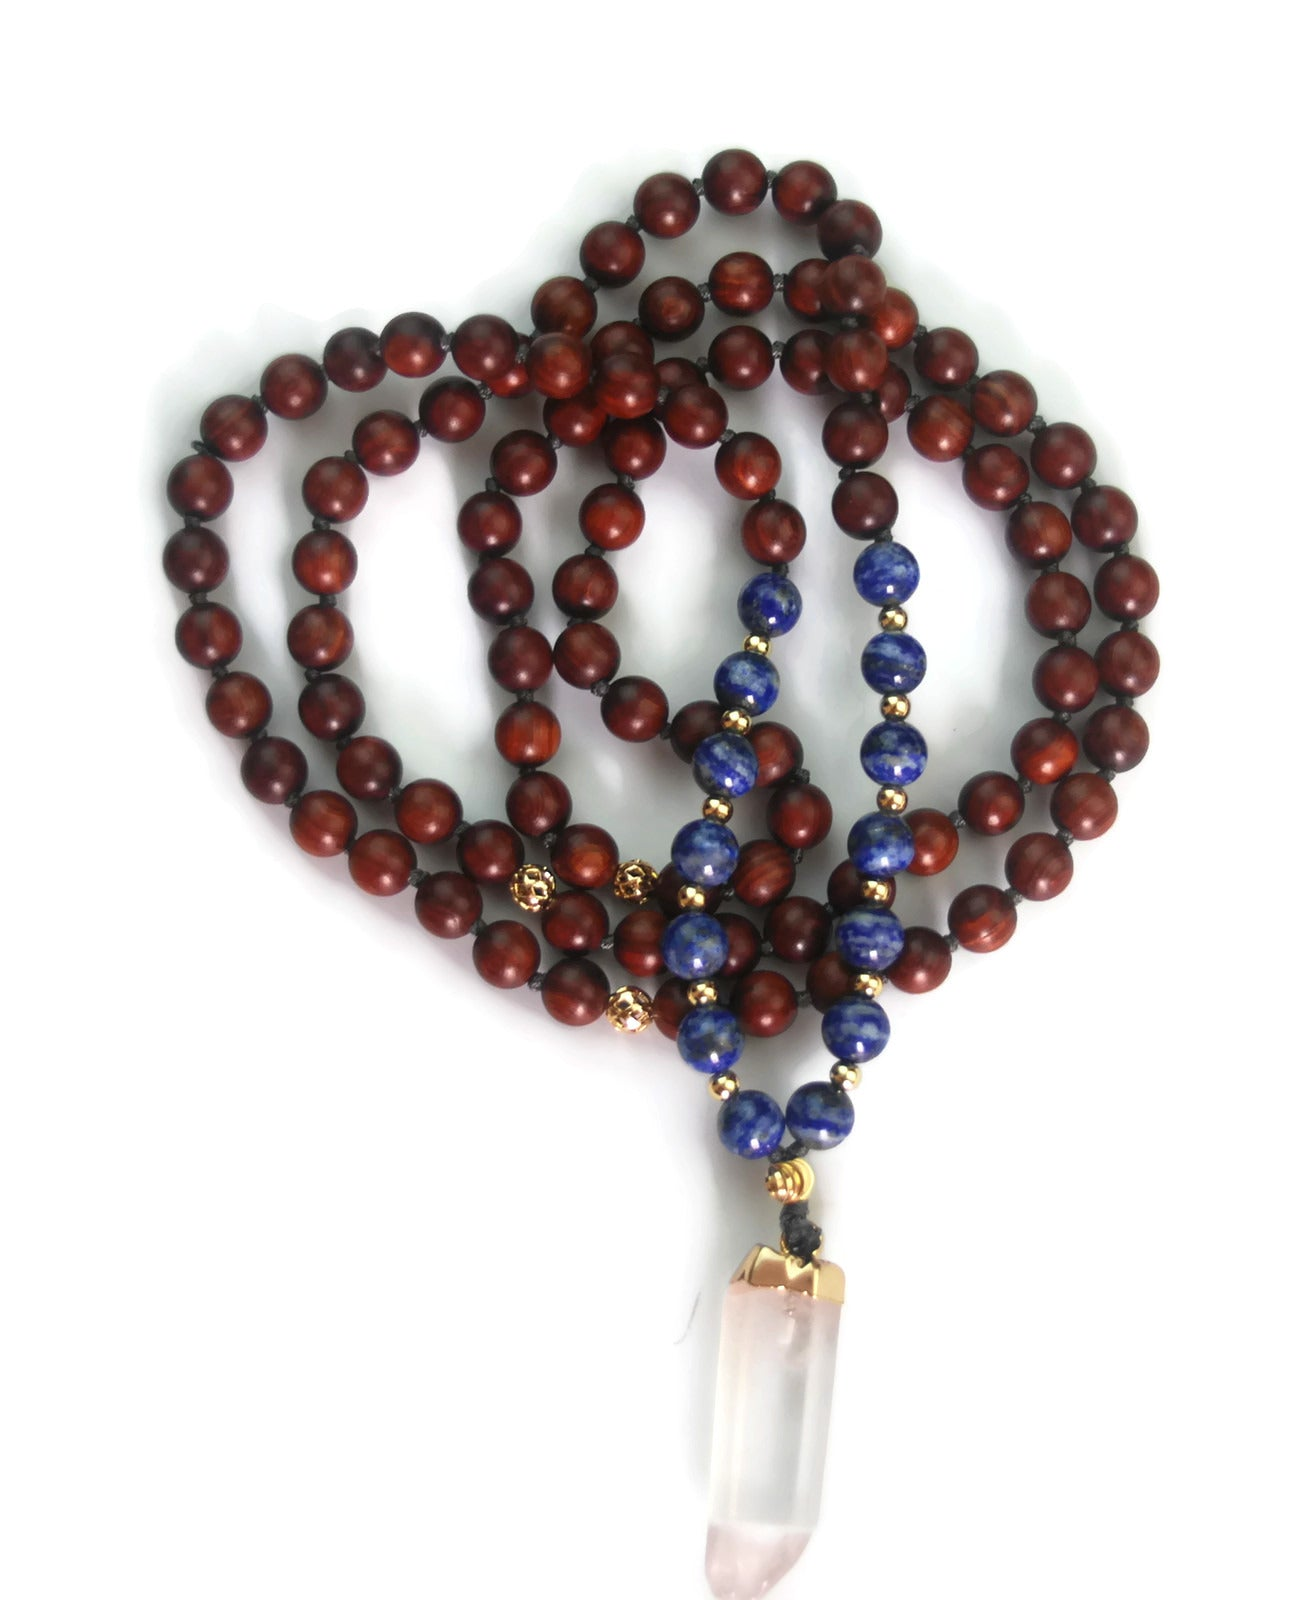 Enlightenment Line 8mm Sandalwood Lapis Crystal Quartz Pendant 24k Gold Knotted 108 Traditional Meditation Mala Necklace Third Eye Chakra